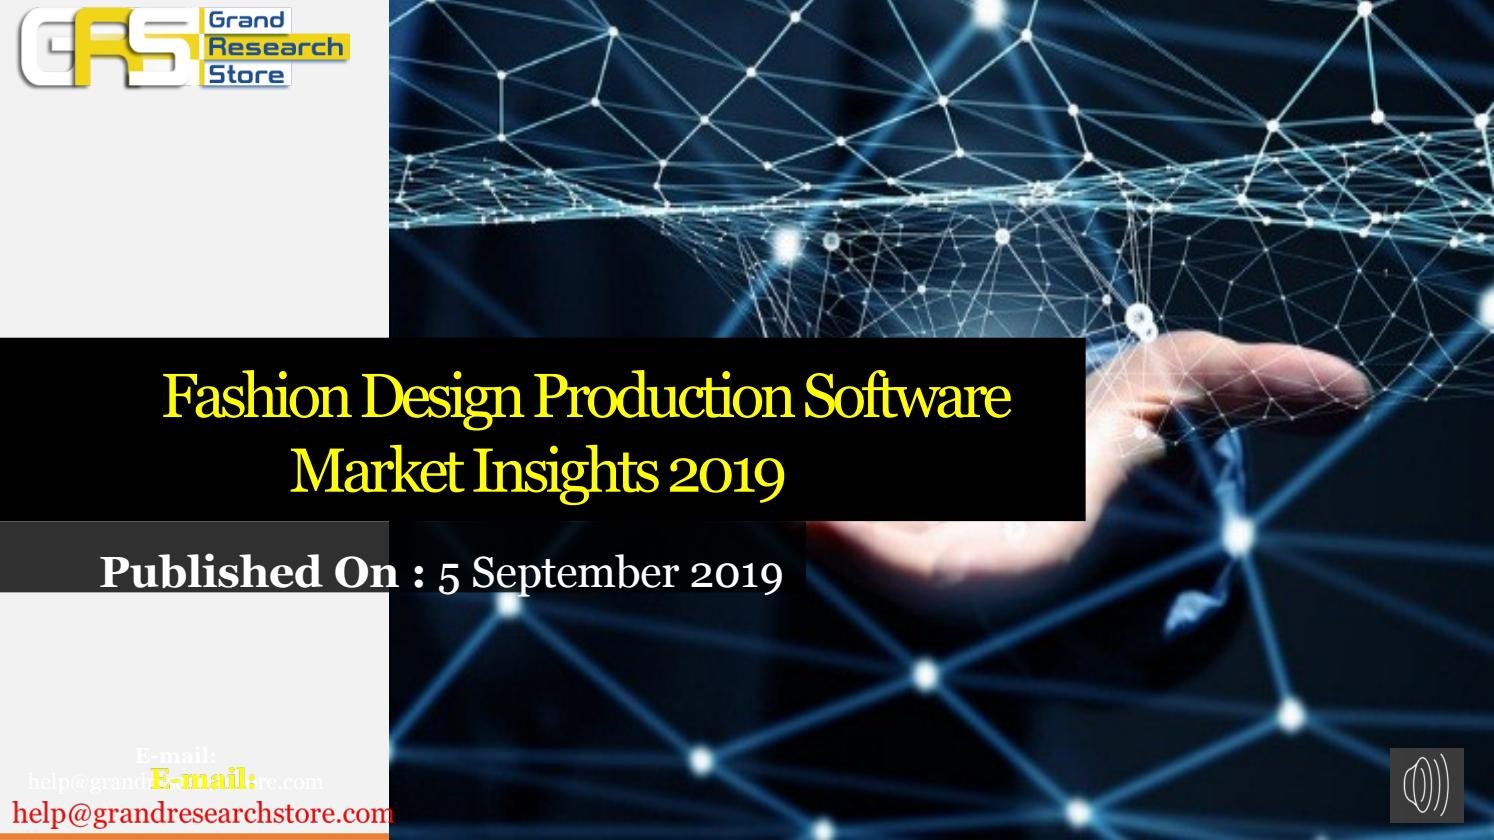 Fashion Design Production Software Market Insights 2019 By Romilkk44 Issuu